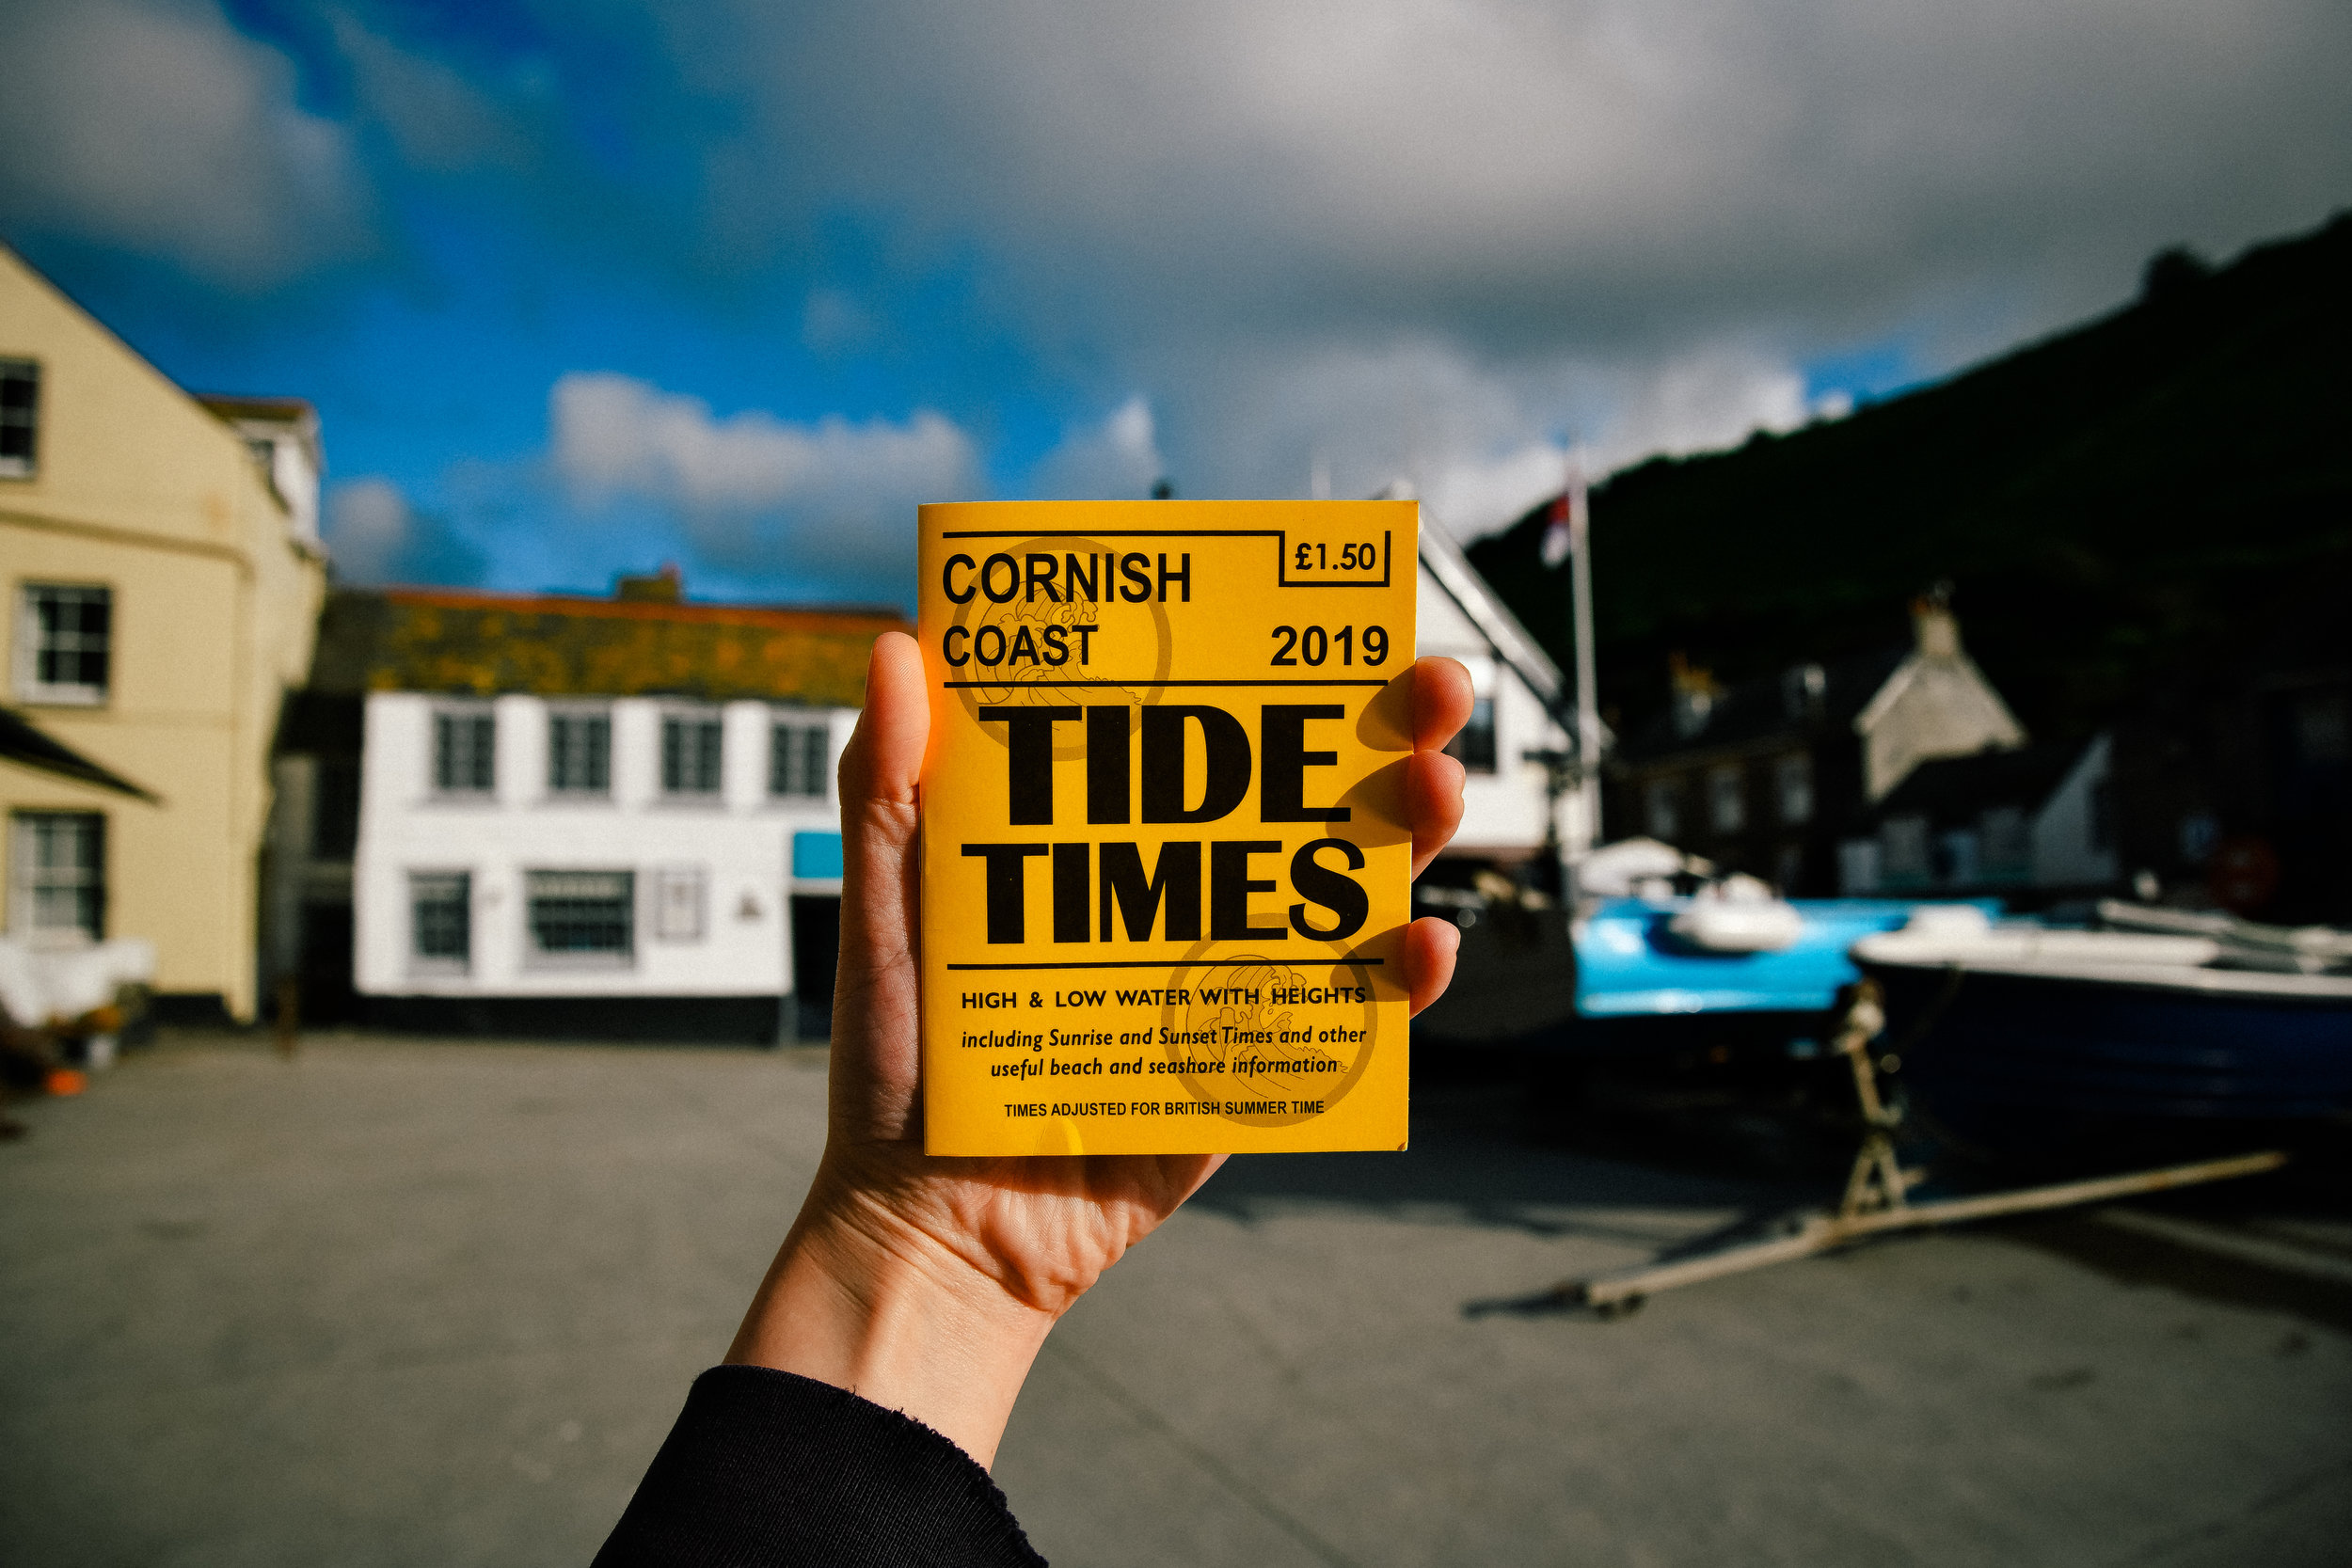 tide times book in port isaac